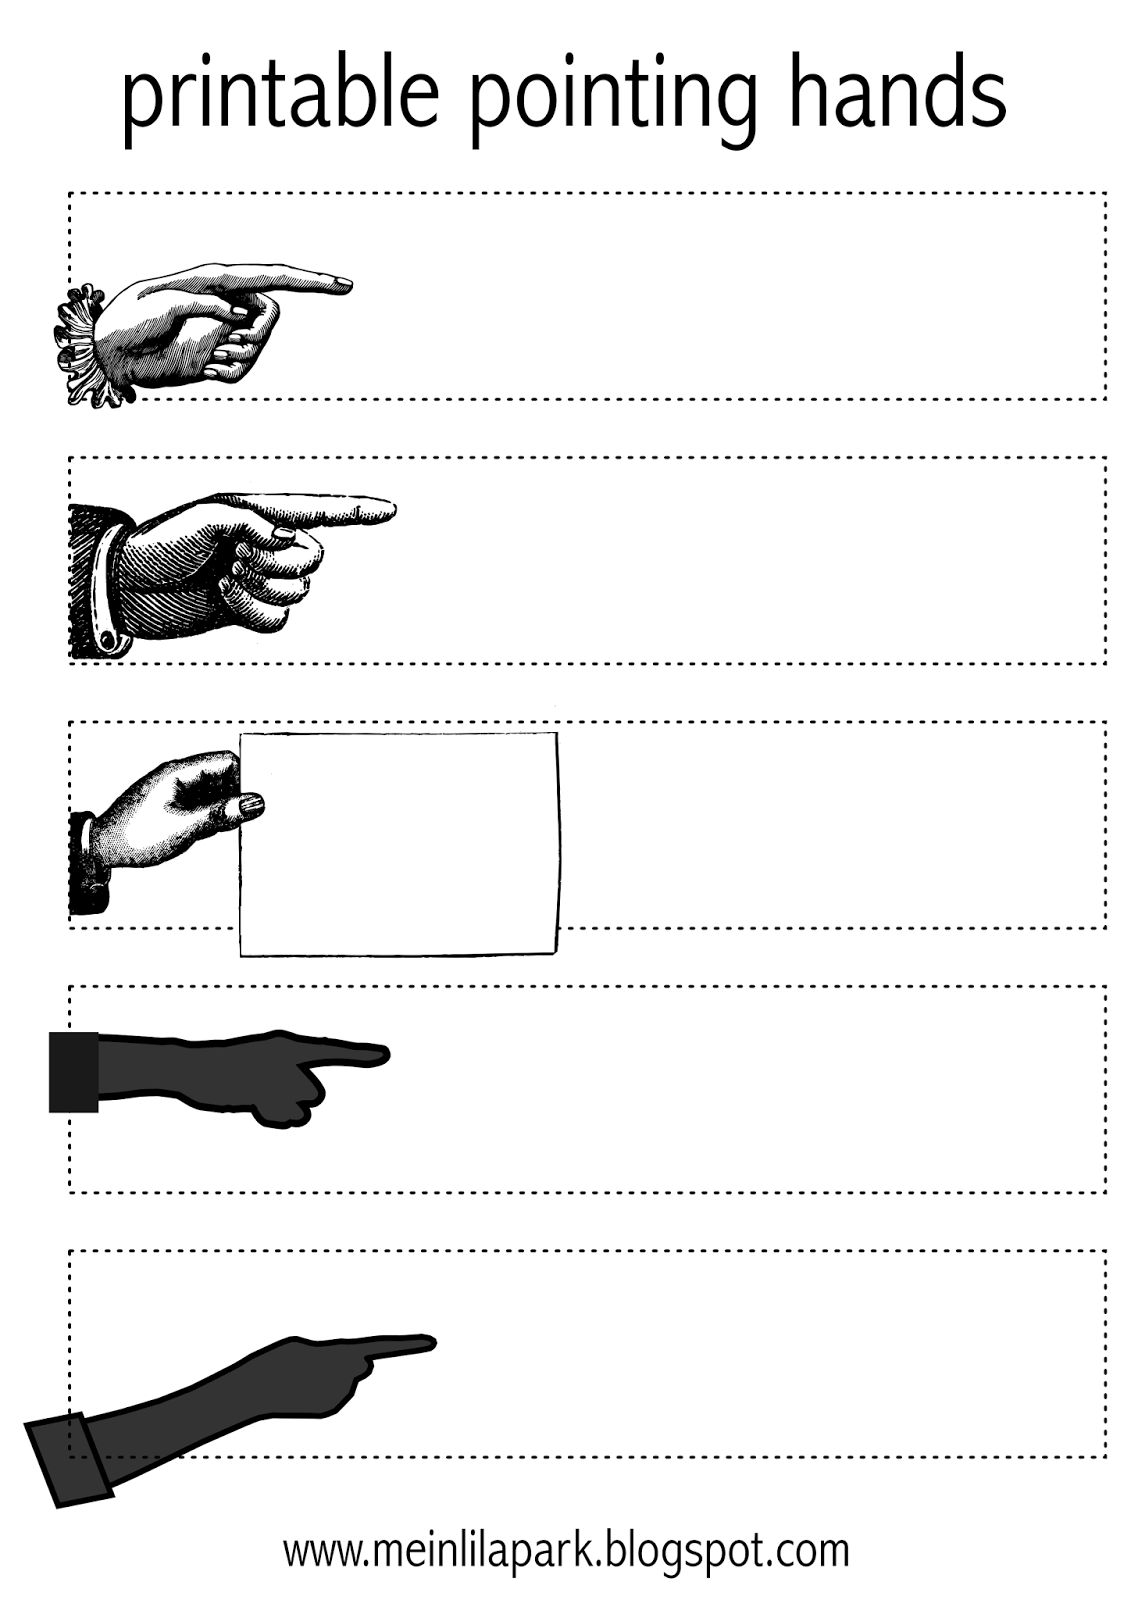 Free Printable Pointing Hands